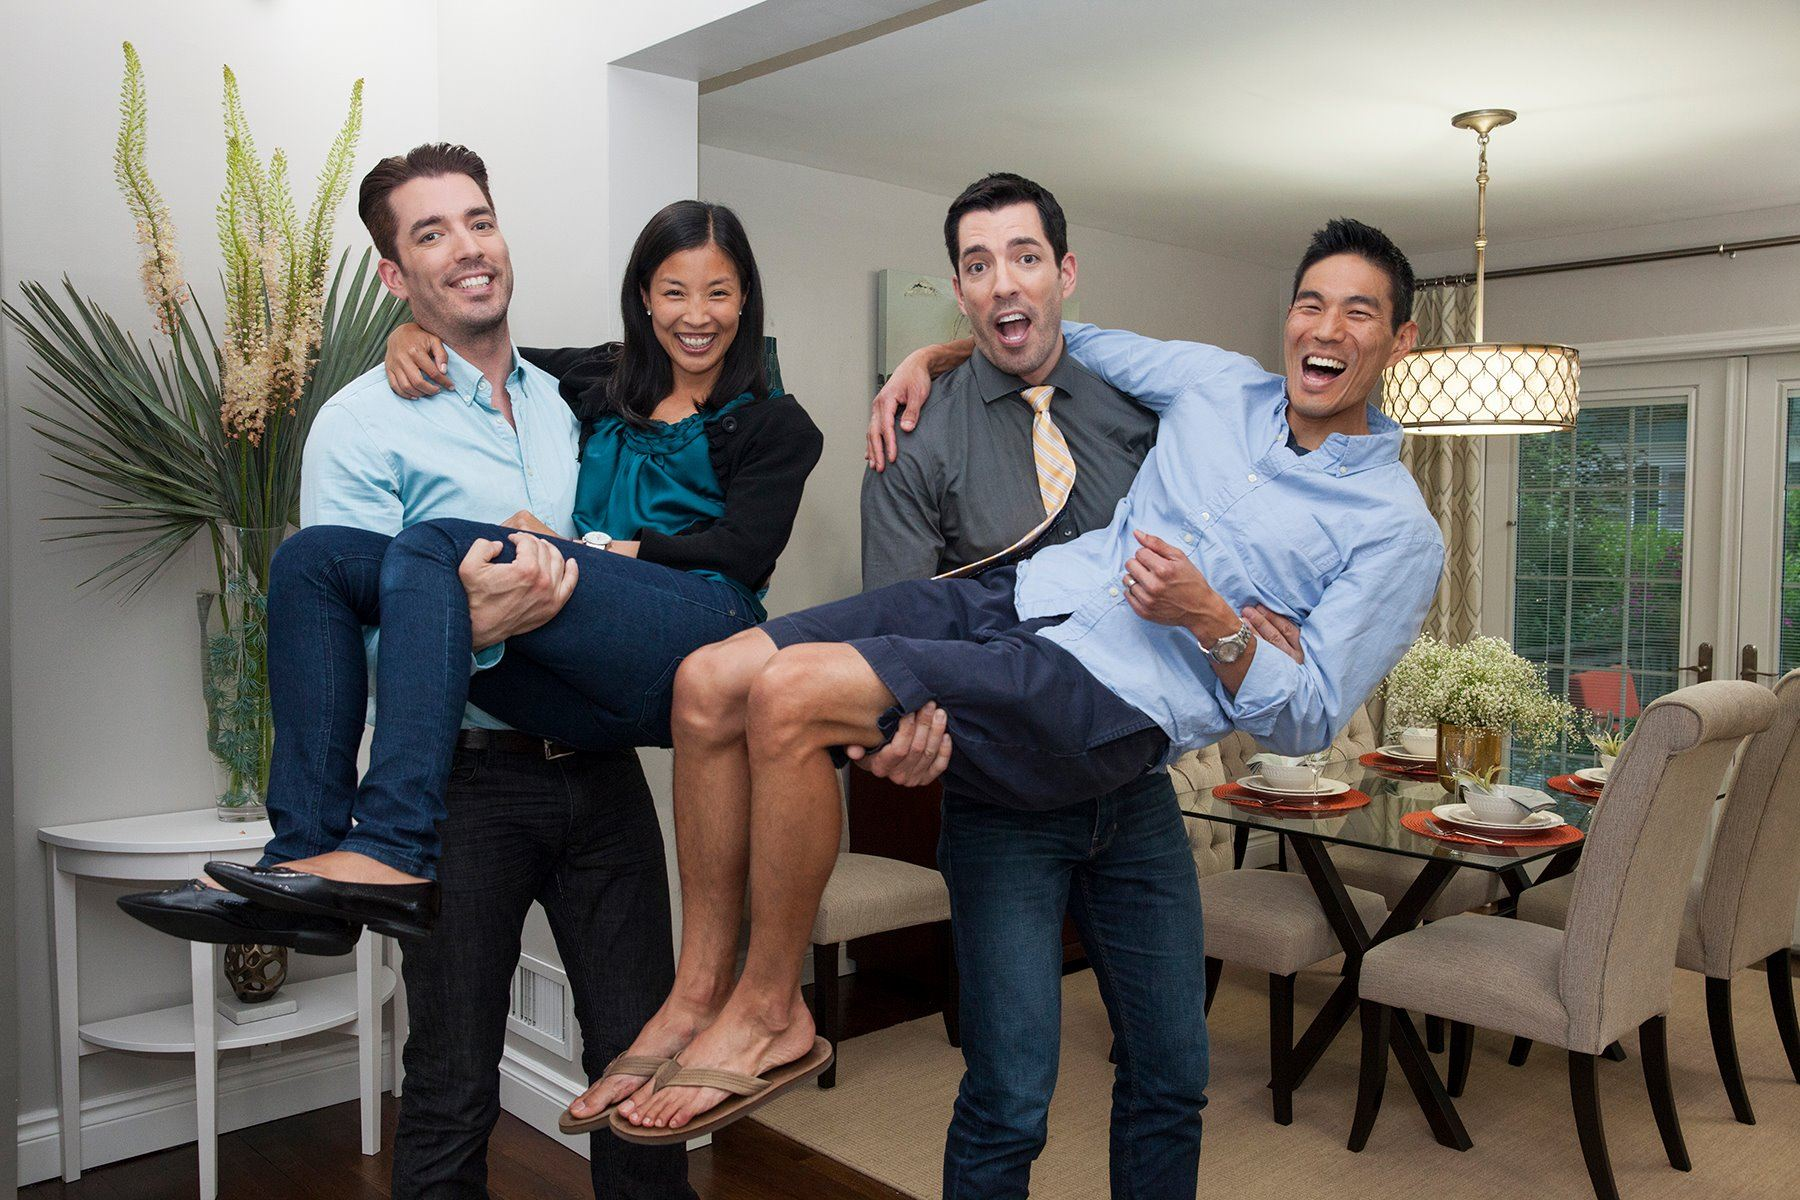 Property brothers goofy clients